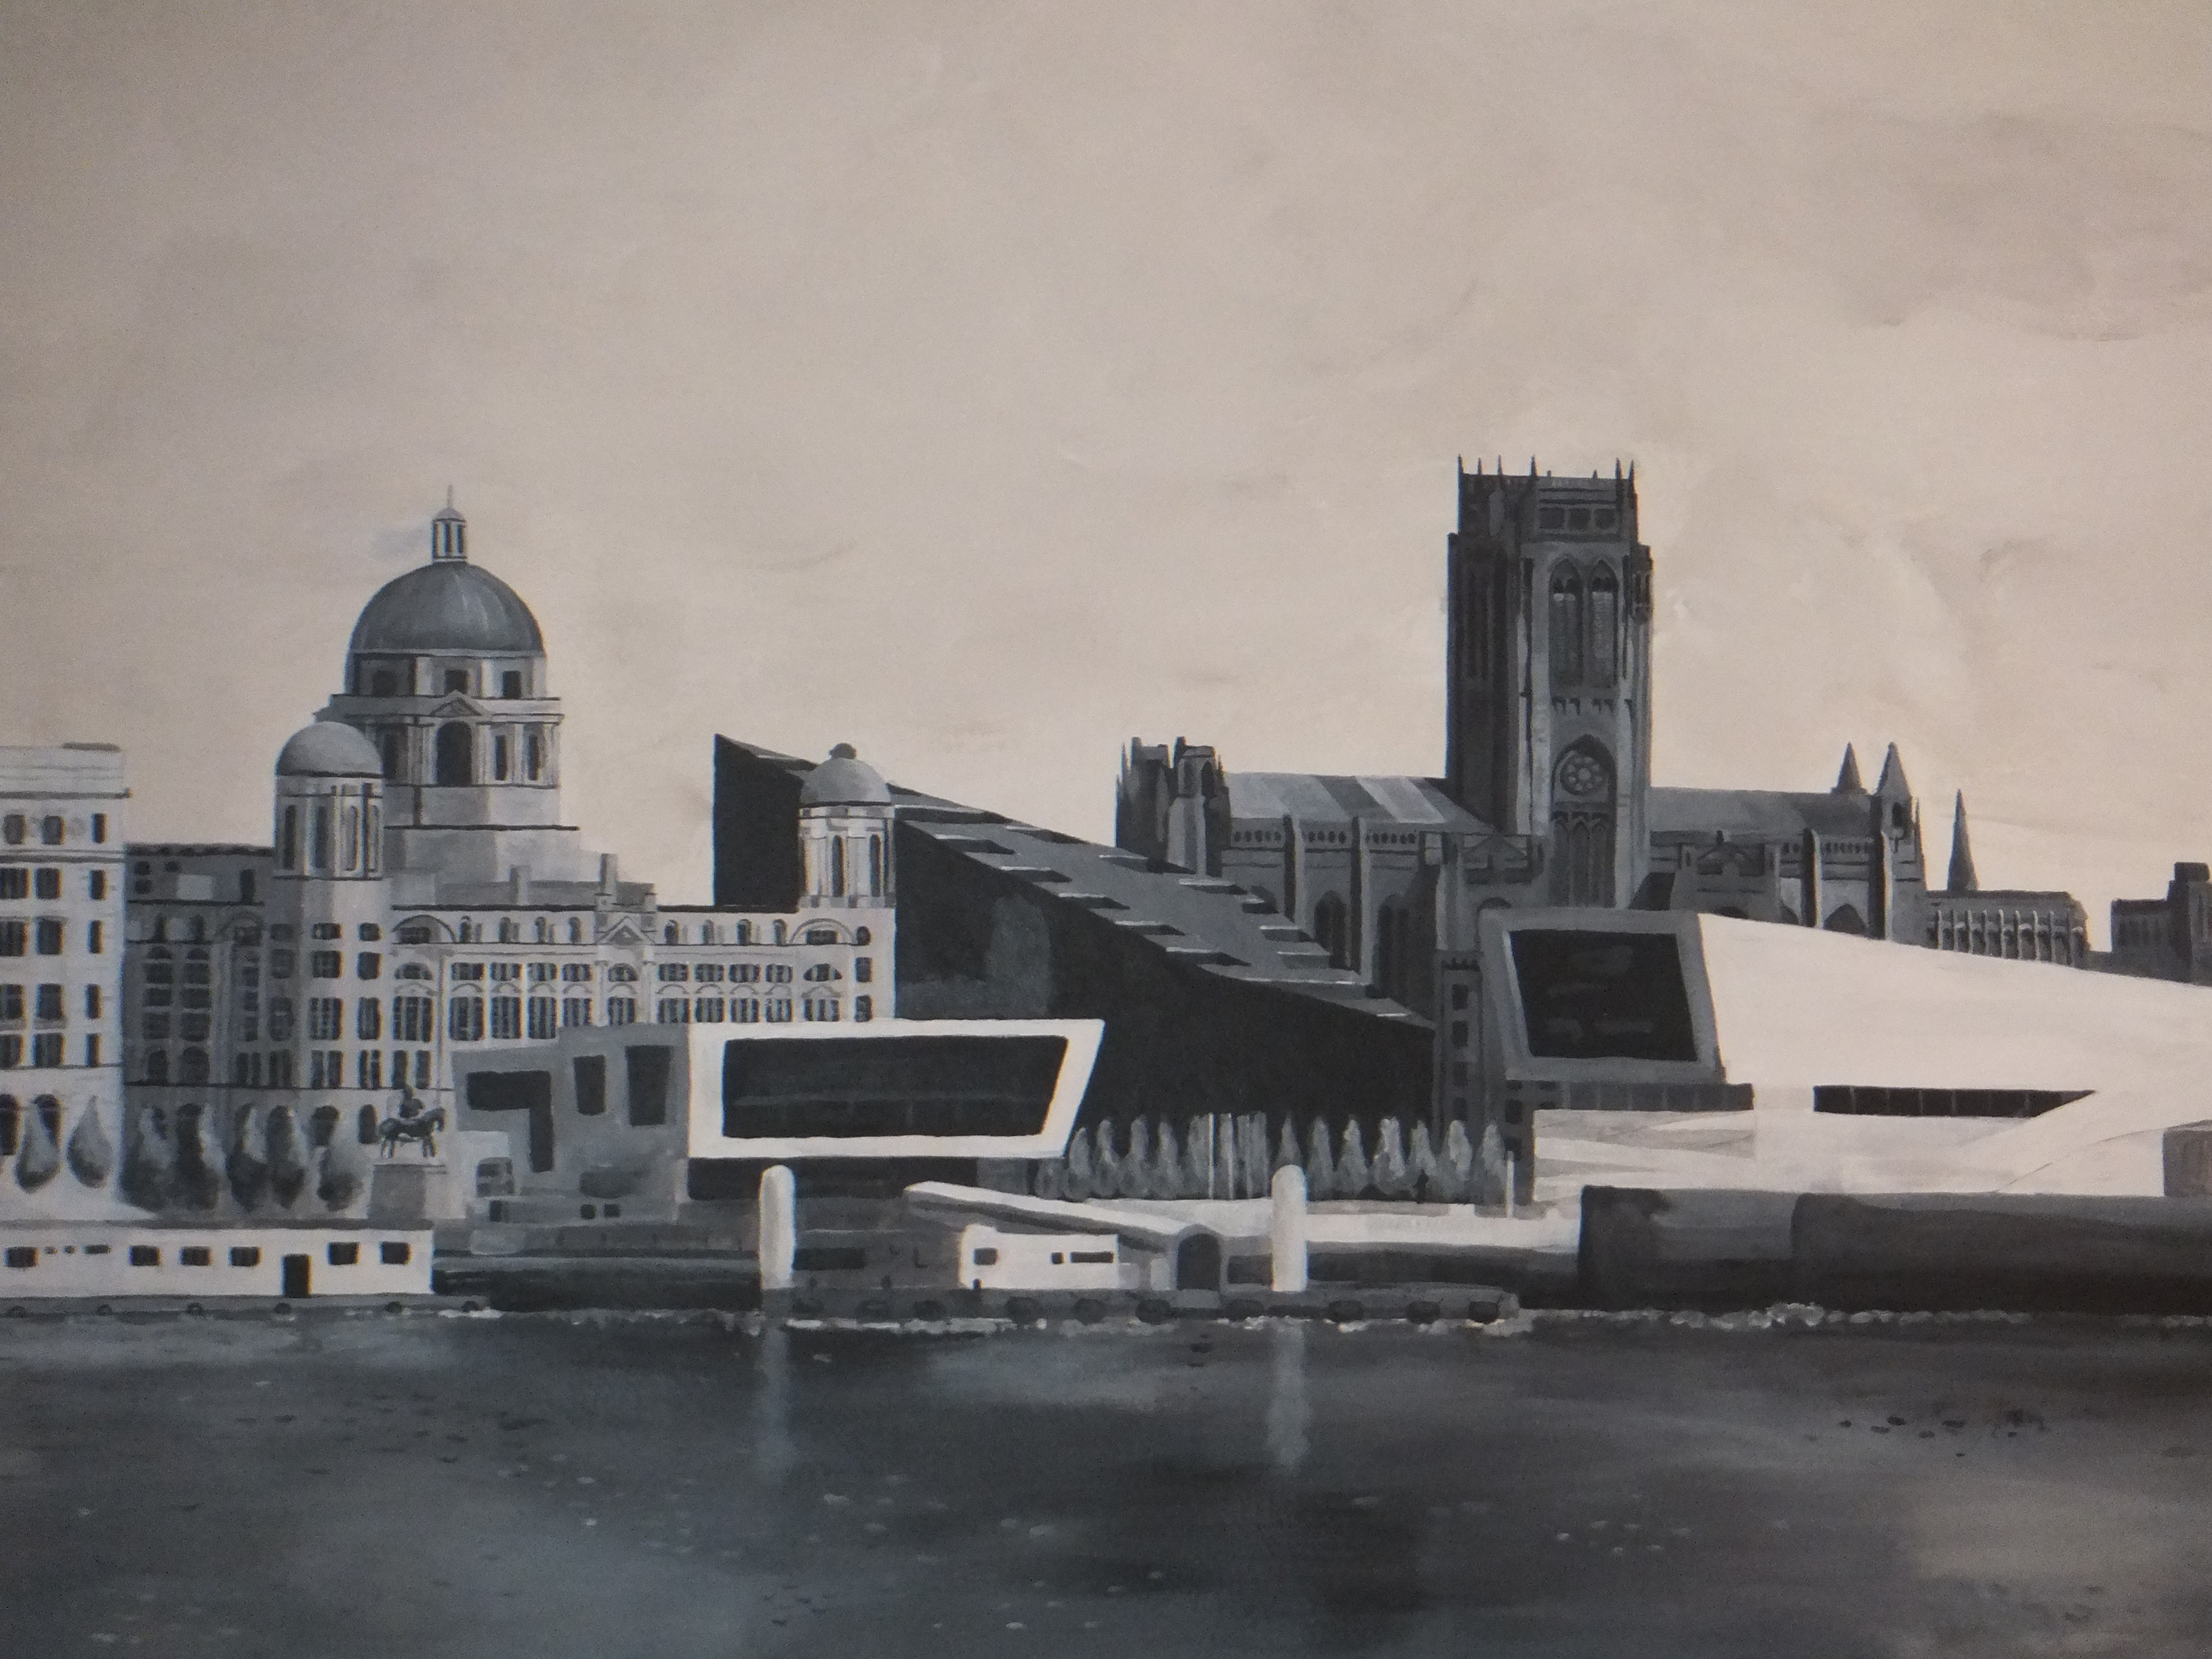 Mann Island Liverpool waterfront view mural